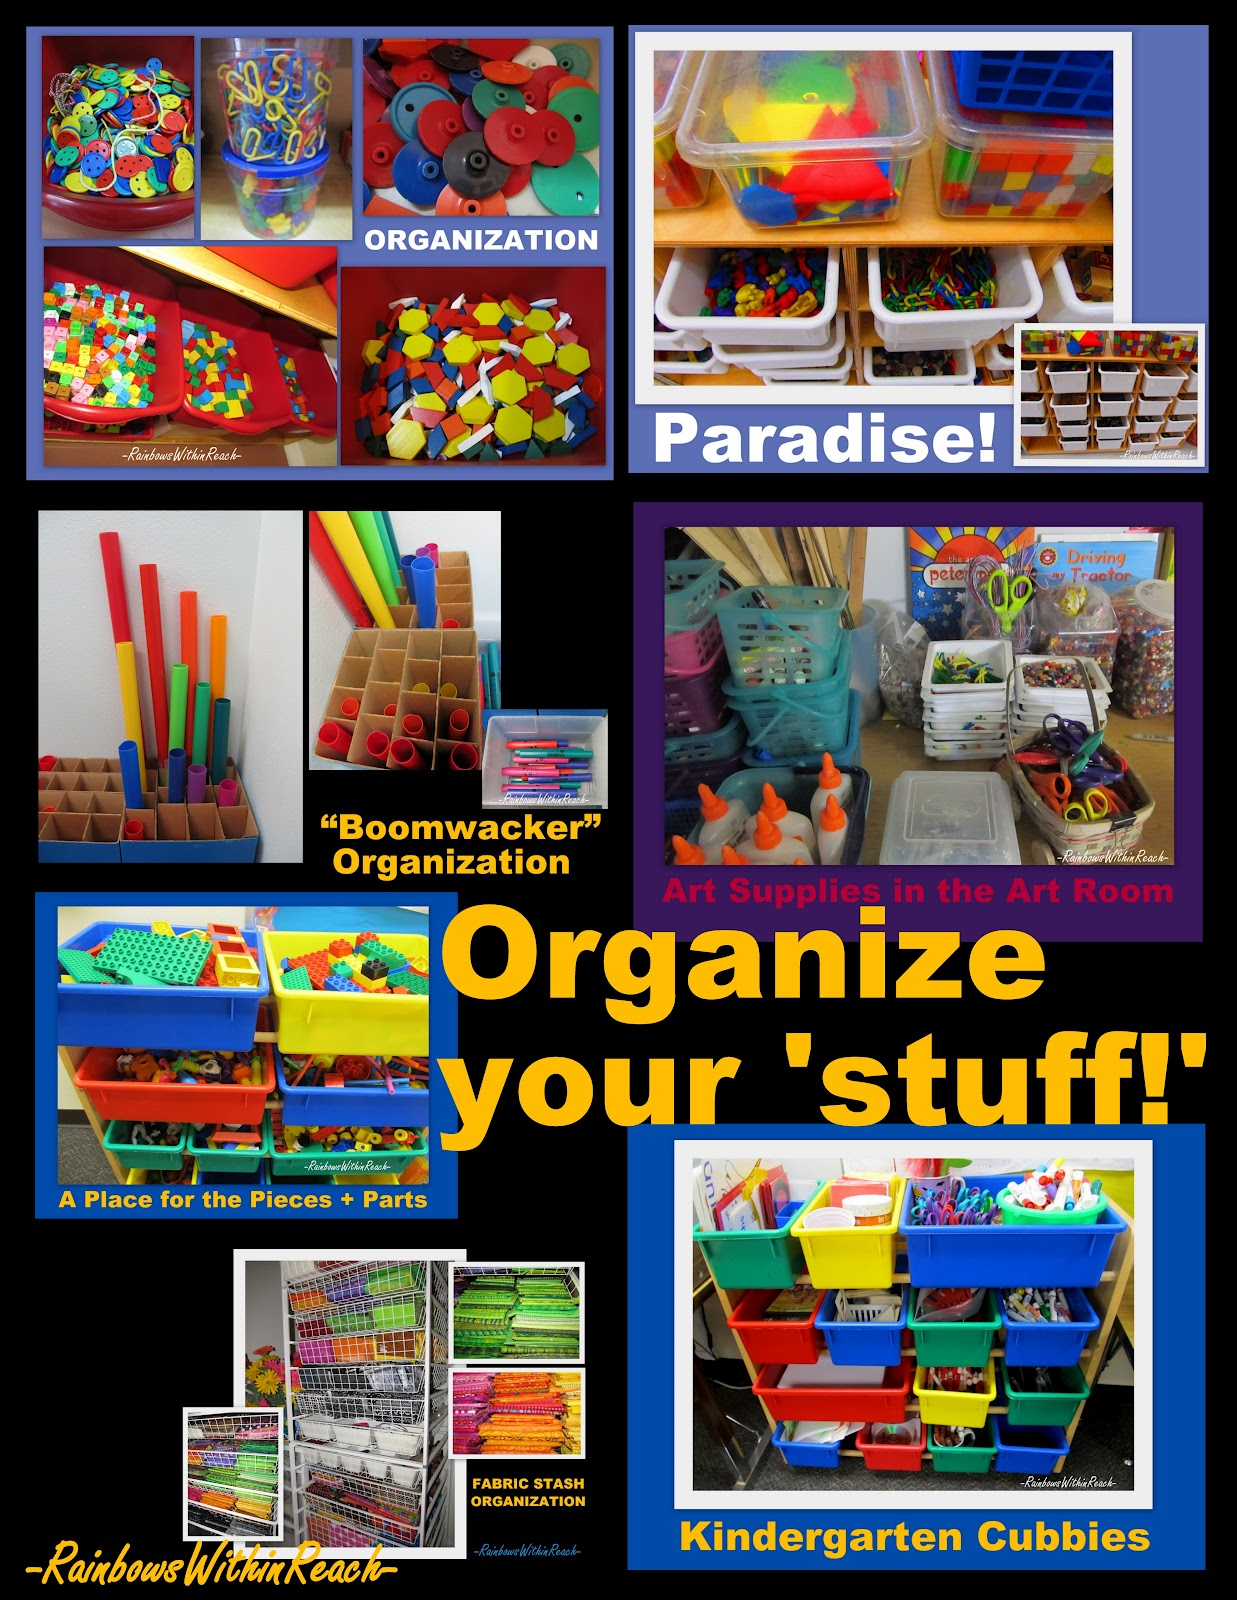 Classroom Organisation Ideas : Rainbowswithinreach organize your classroom materials